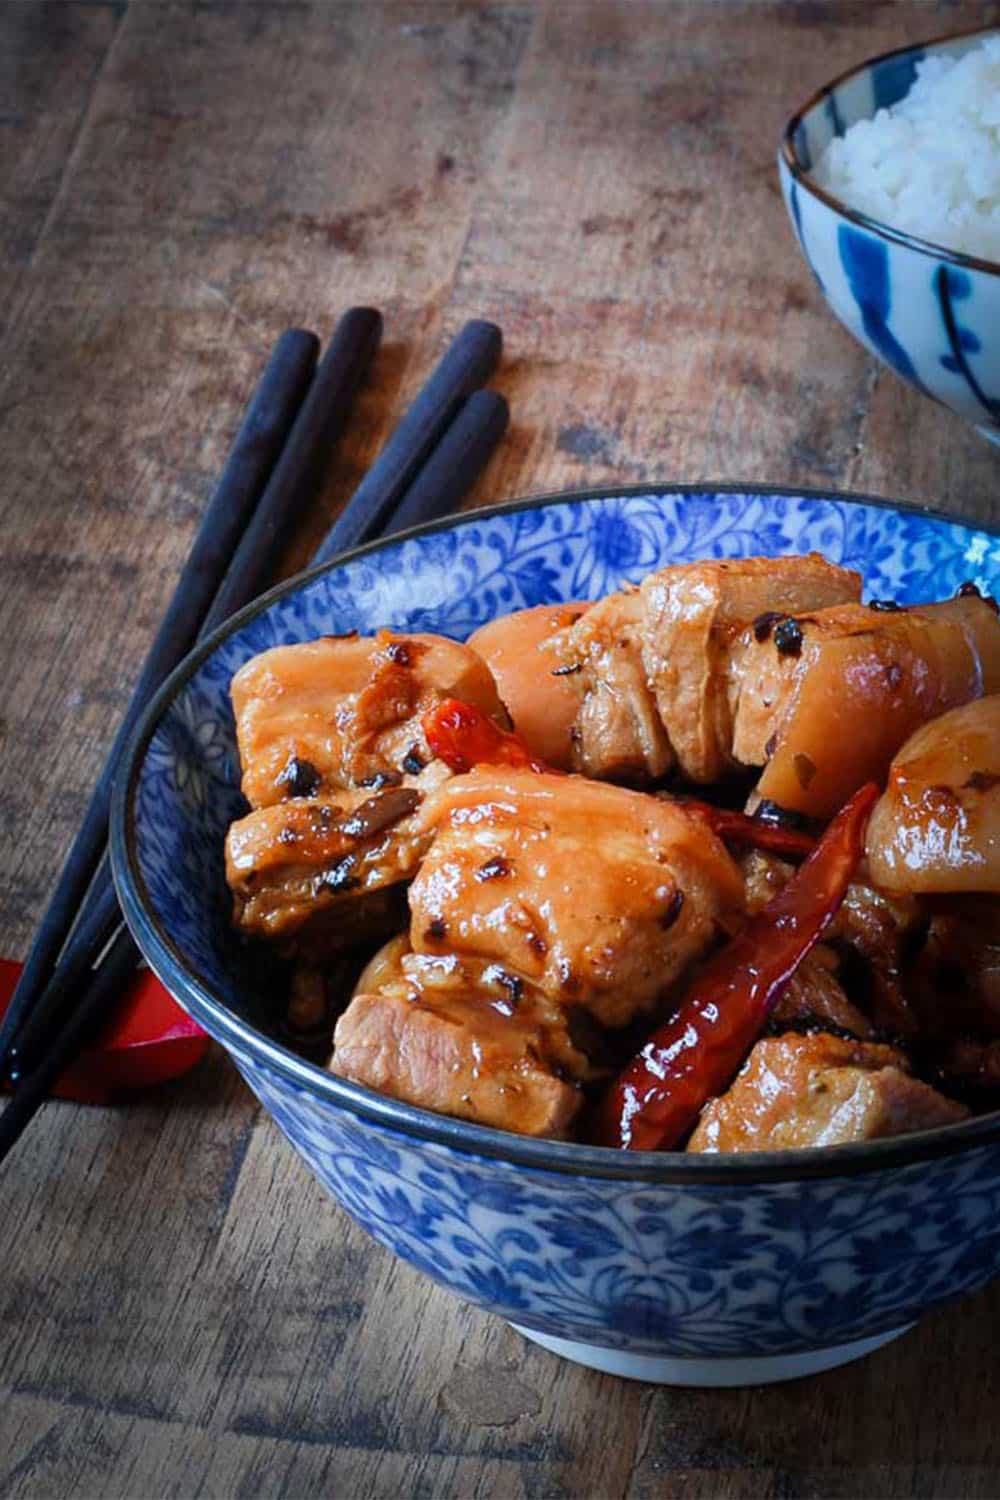 Chairman Mao's Red-Braised Pork Recipe